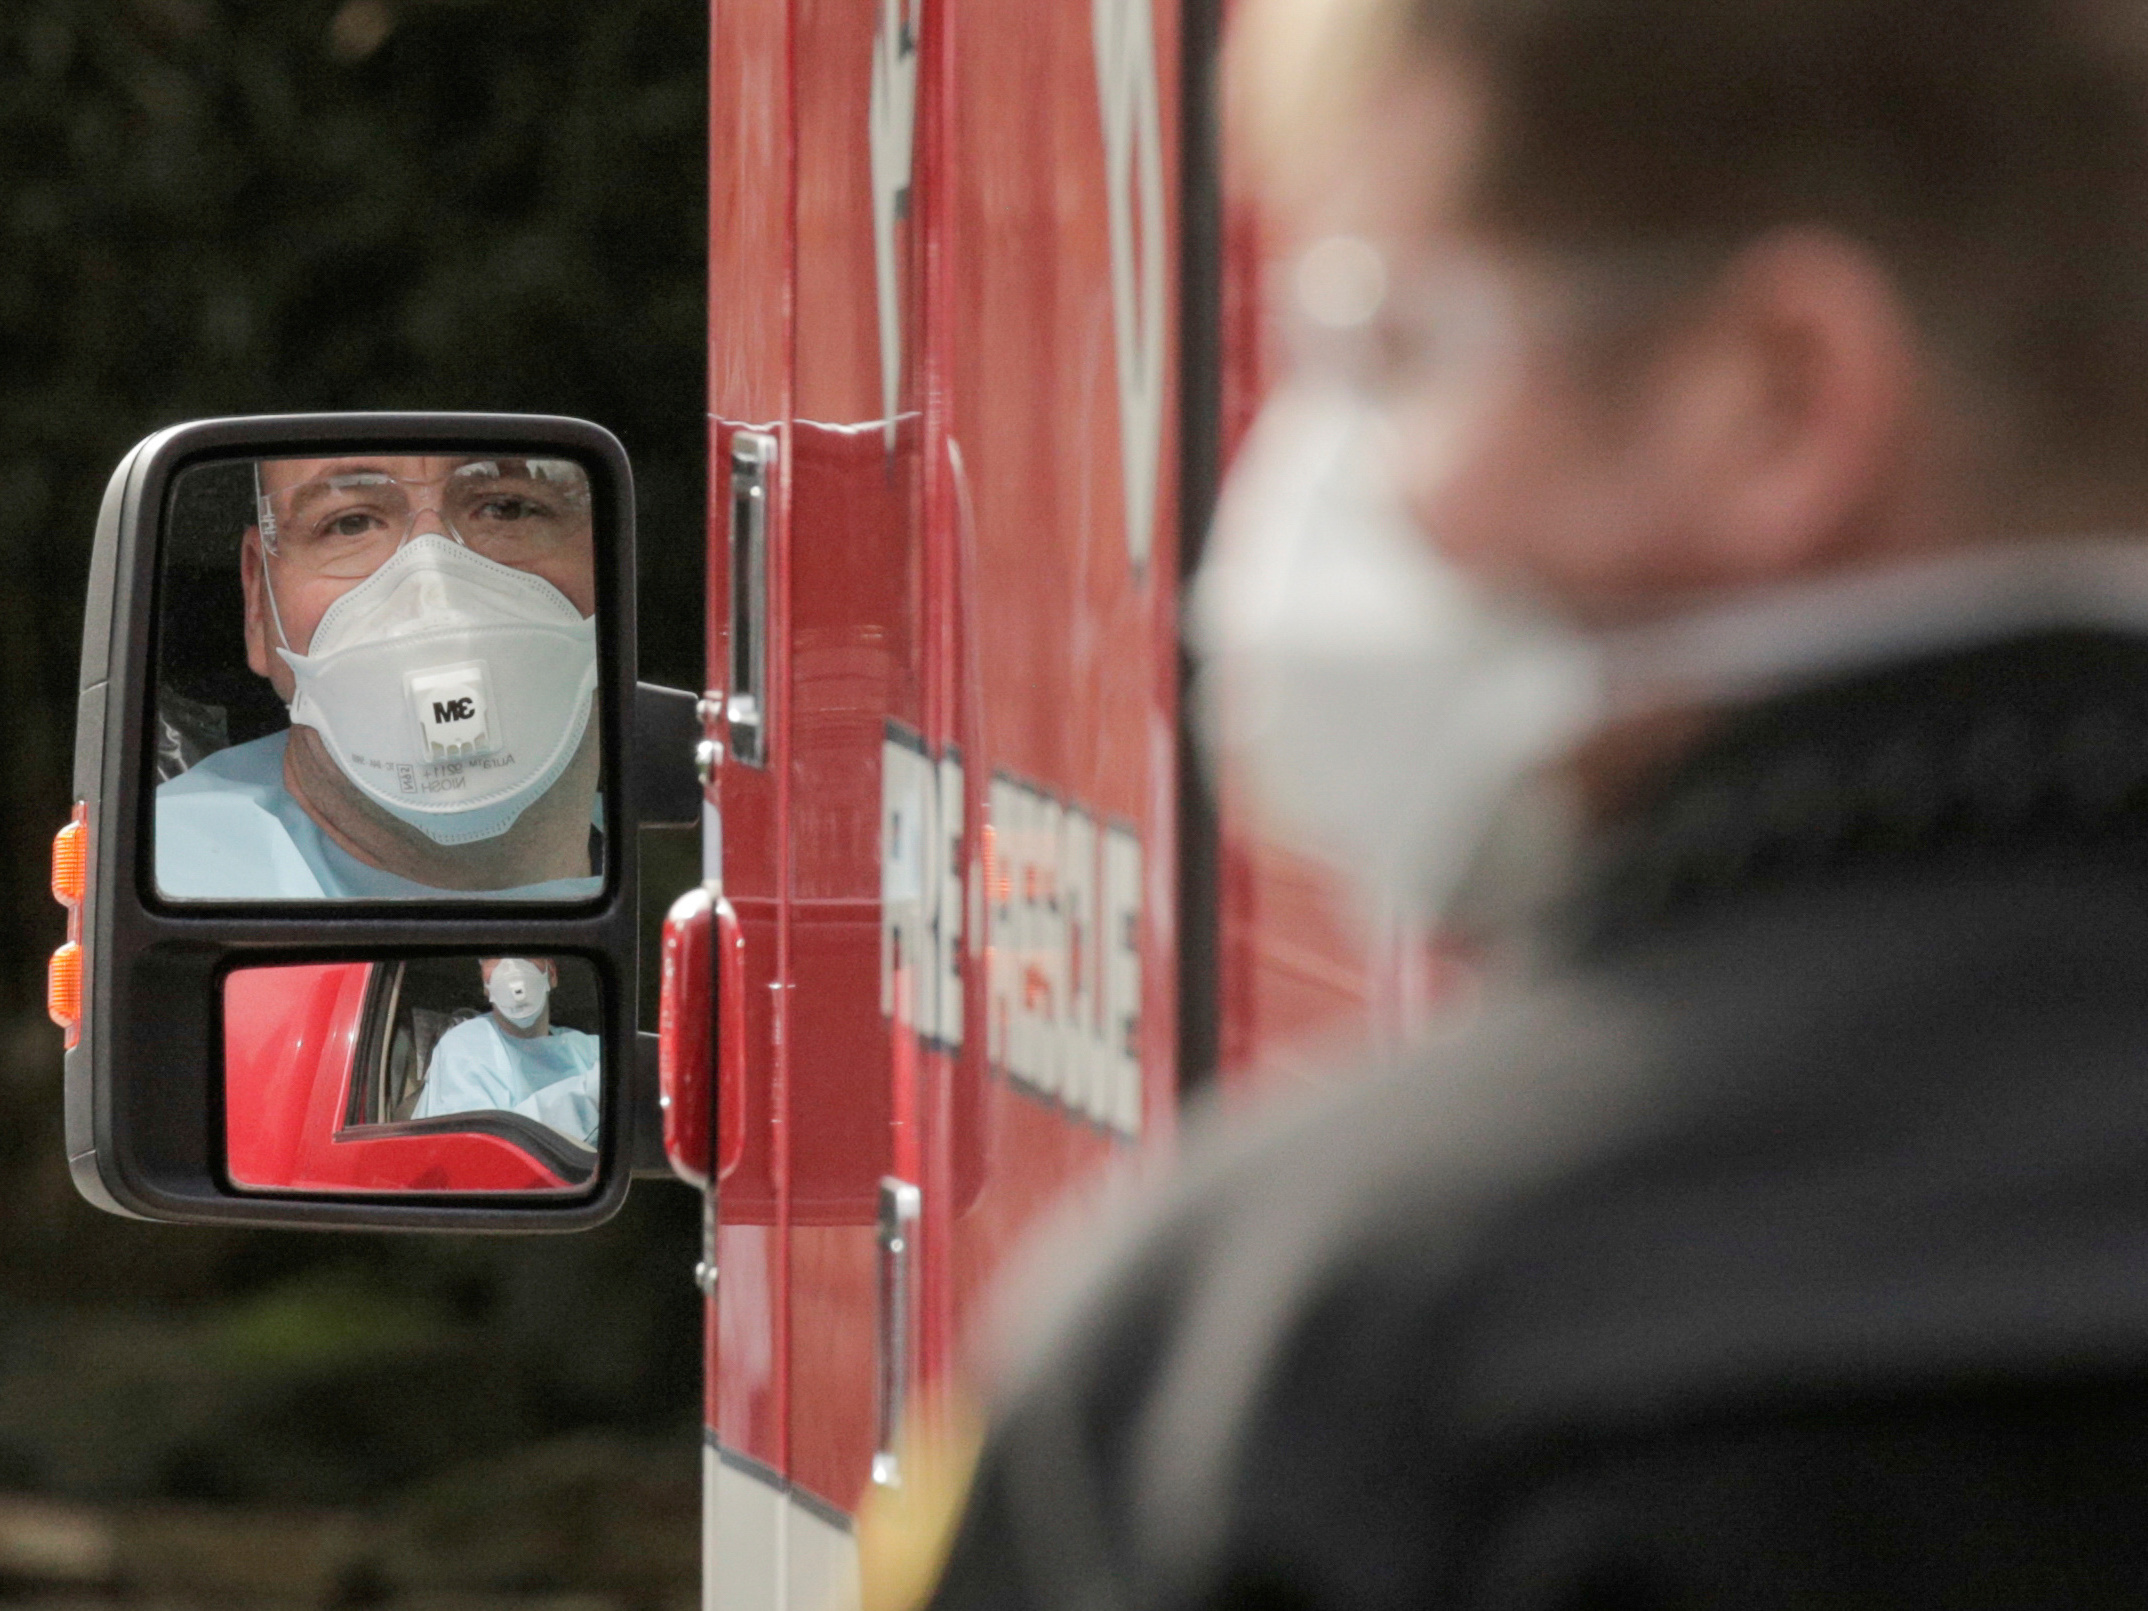 A medic drives an ambulance at the Life Care Center of Kirkland, Wash., which has been linked to most of the deaths in the U.S. from the coronavirus disease COVID-19 so far.